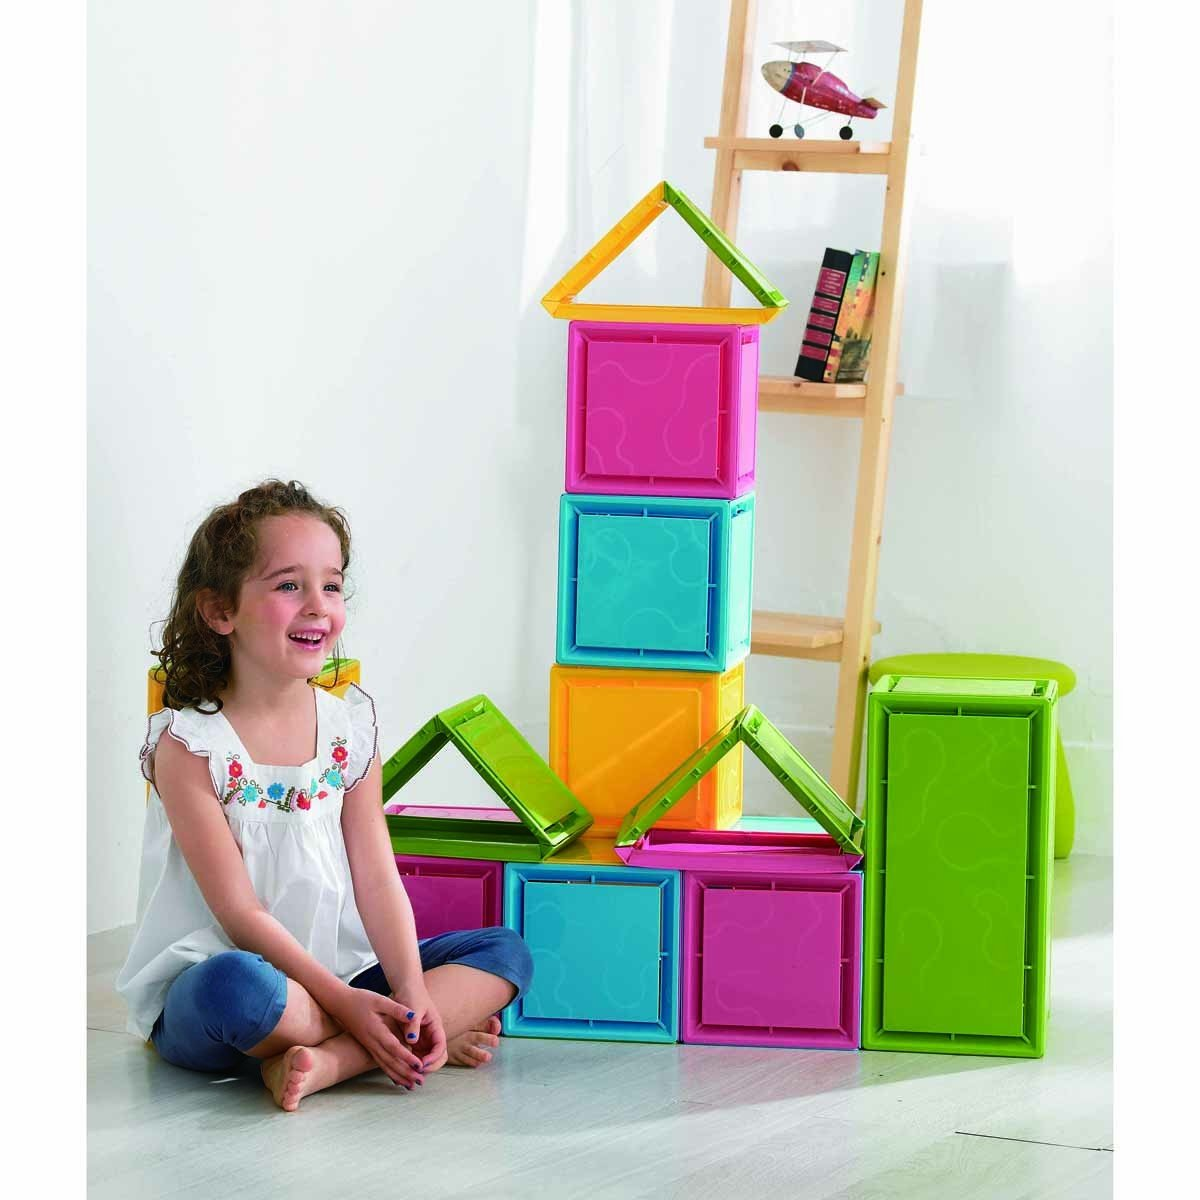 WePlay KC0003 – Stacking Blocks, 68-teilig online kaufen